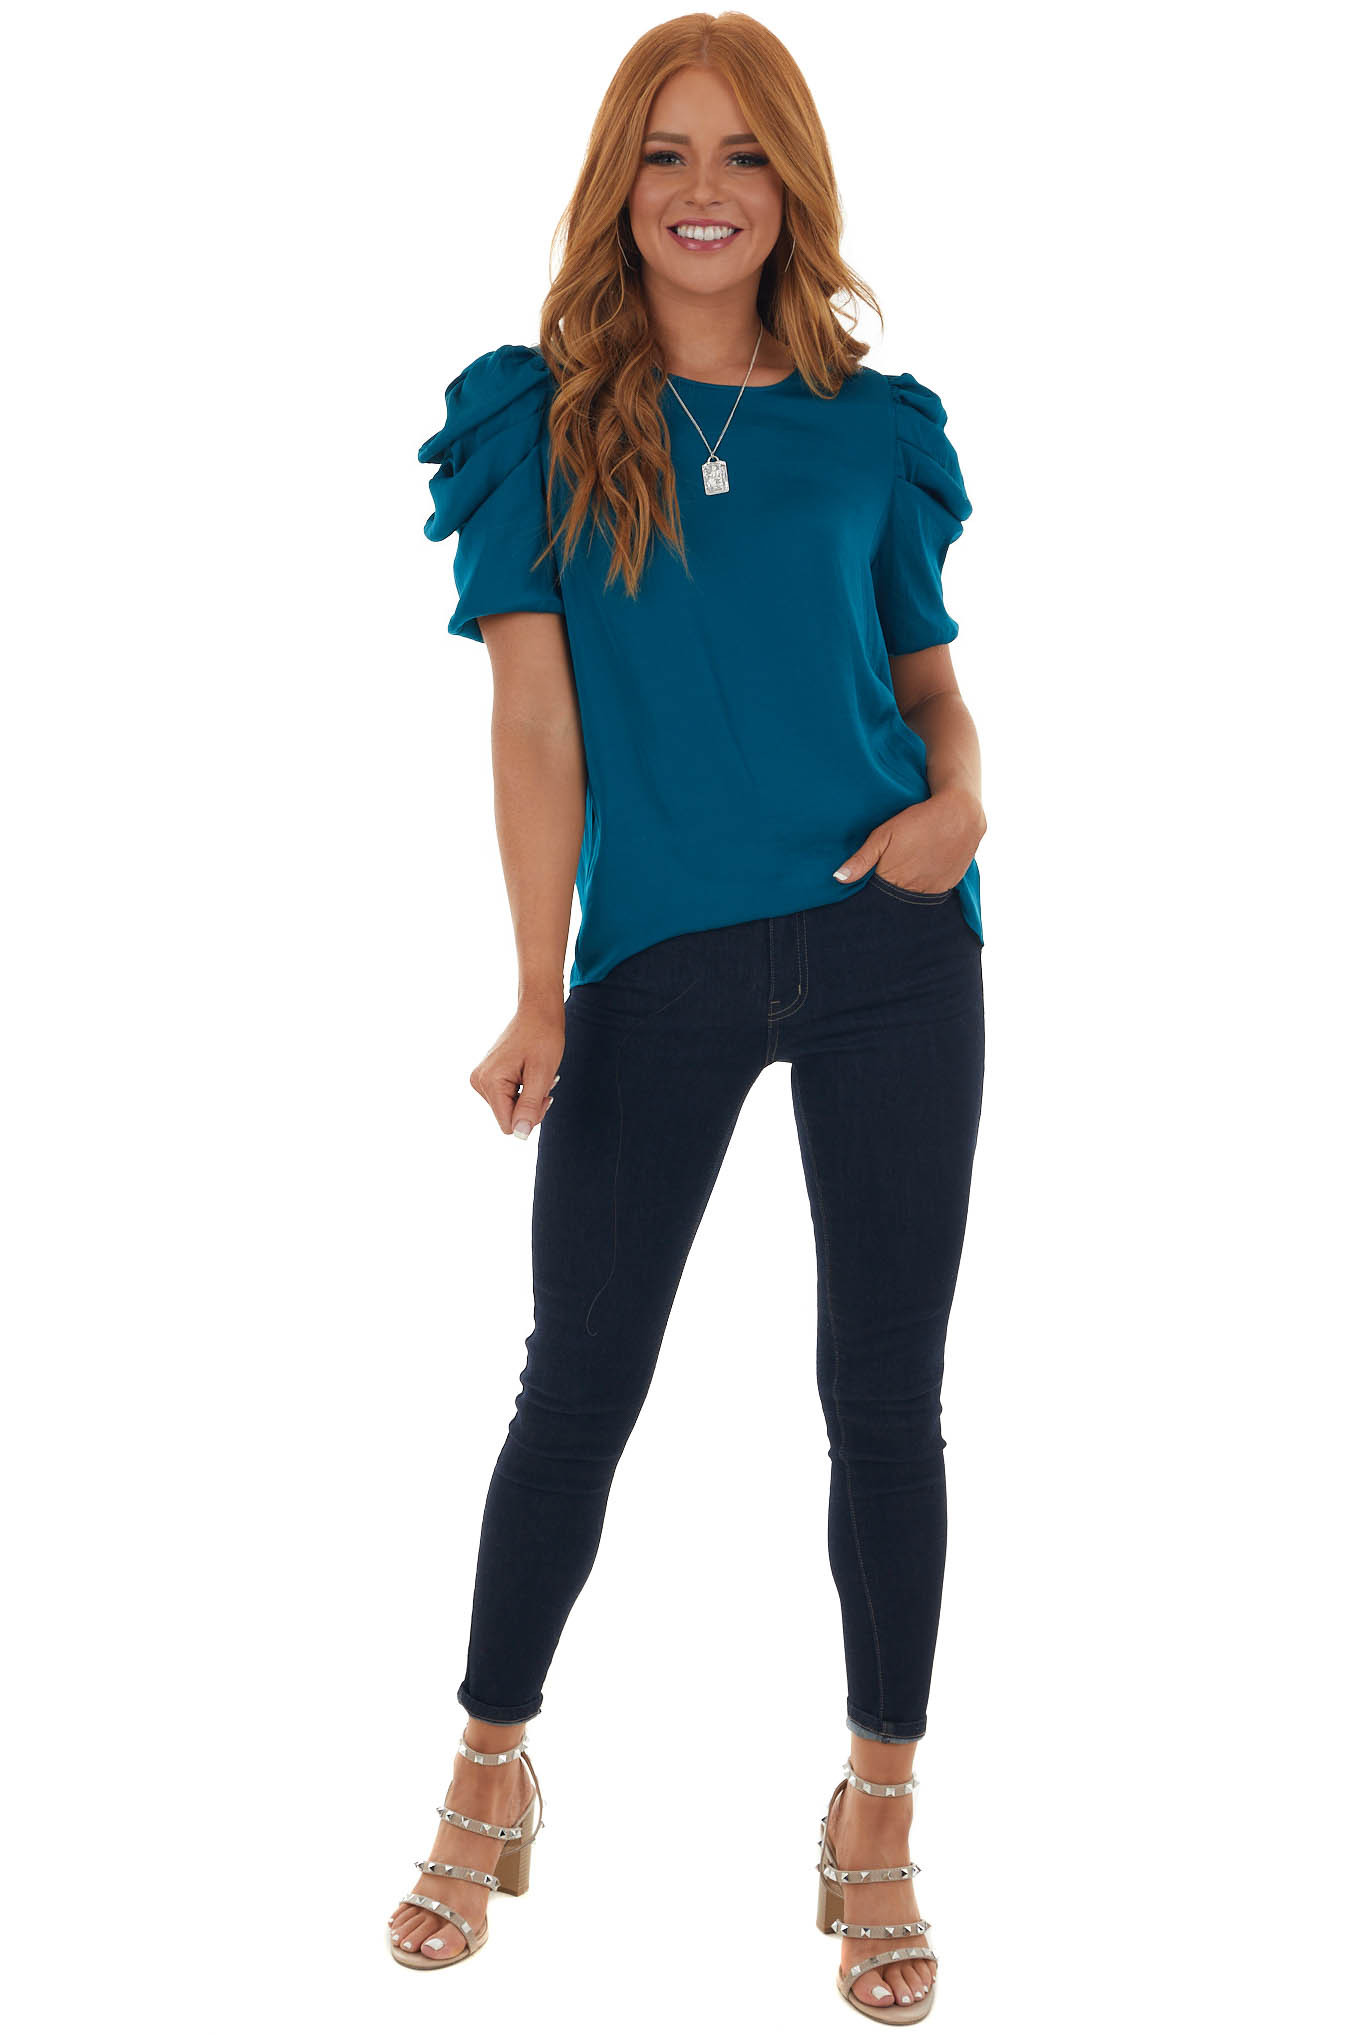 Sea Blue Silky Woven Top with Puffy Pleated Cap Sleeves